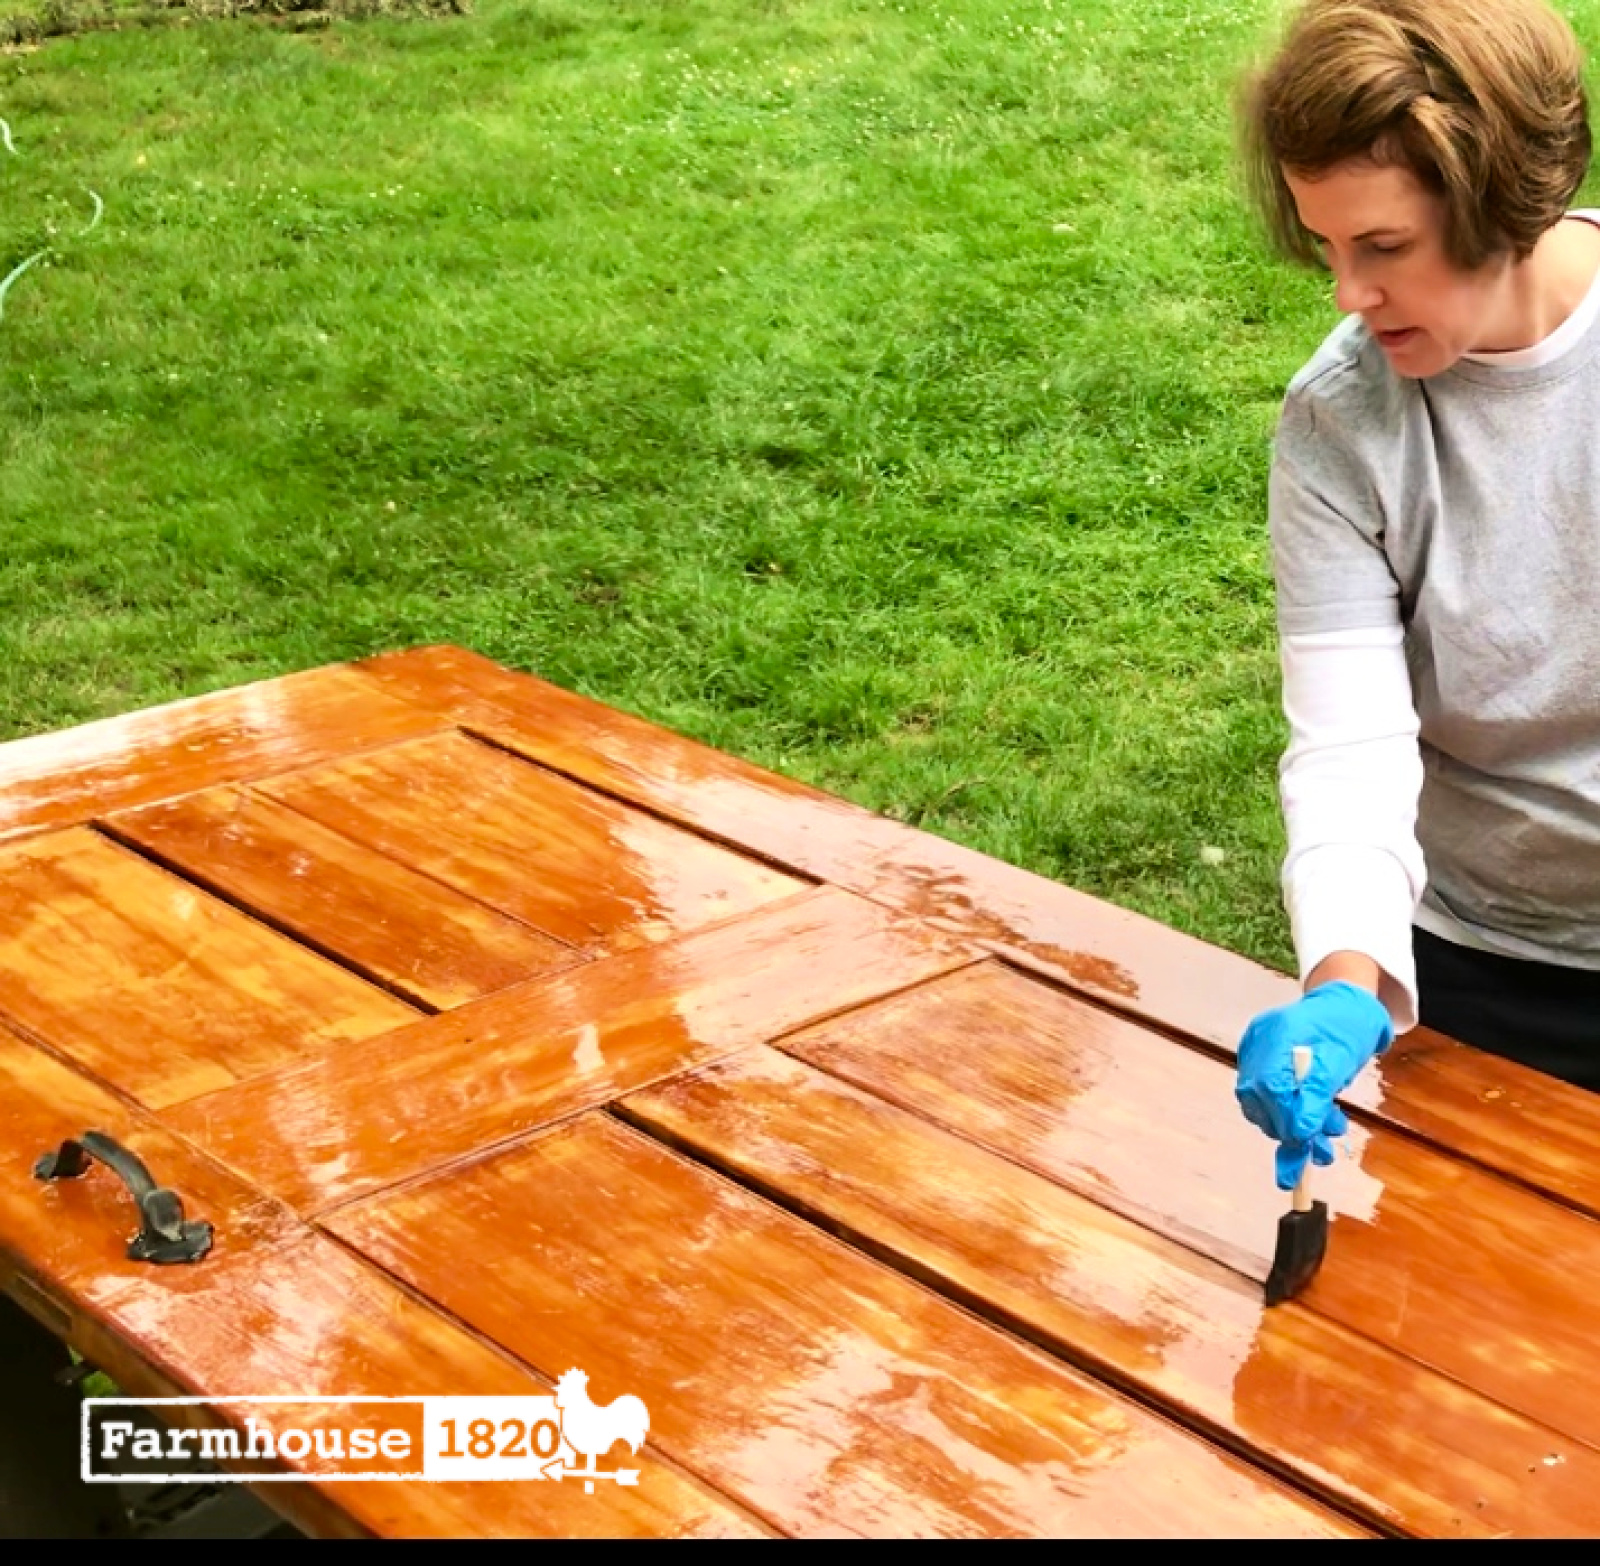 chicken coop - applying marine varnish to an exterior door to withstand the elements